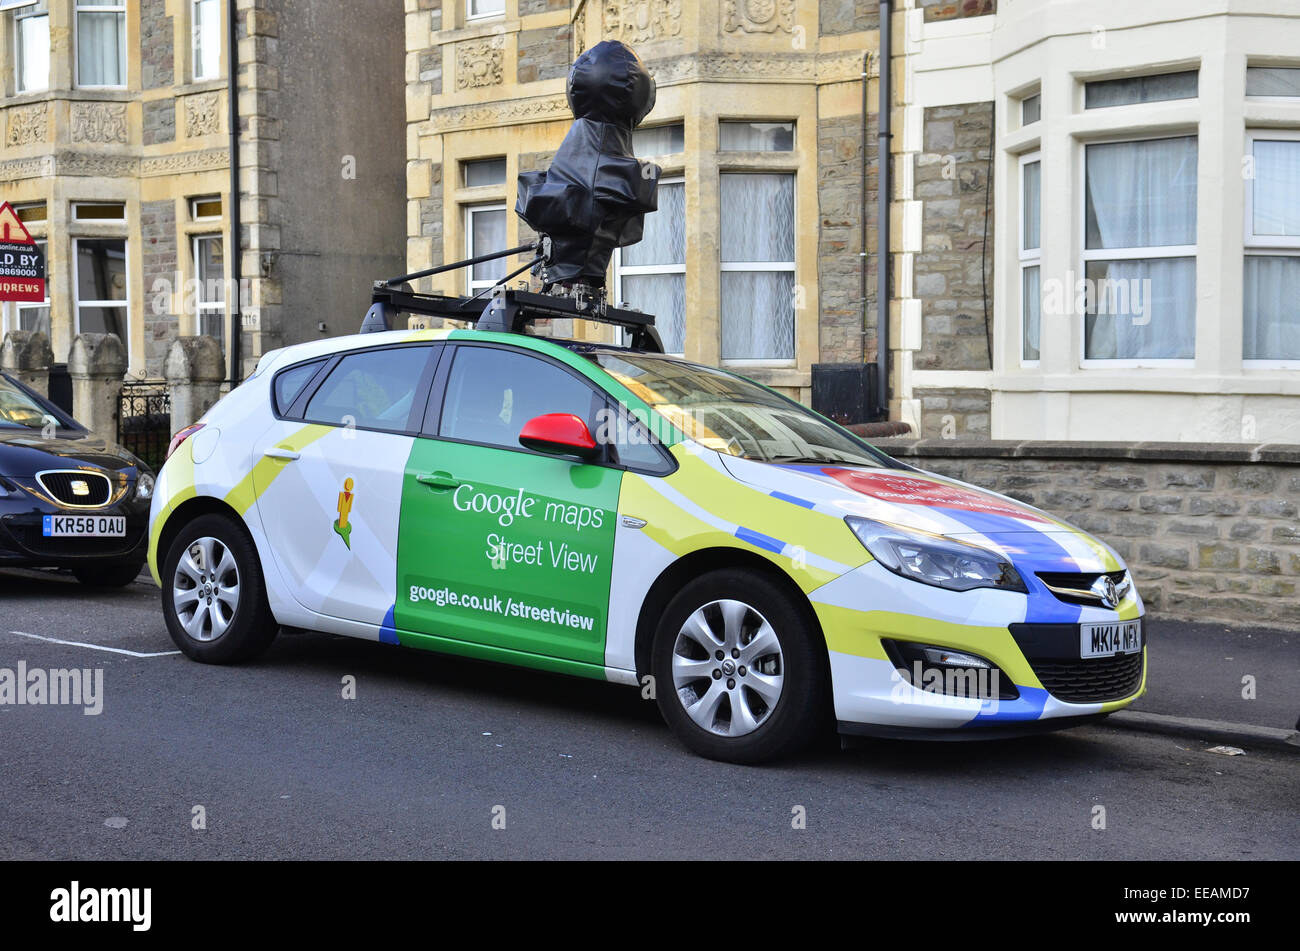 Google street car seen parked up in Bristol. Robert Timoney/AlamyLiveNews. - Stock Image